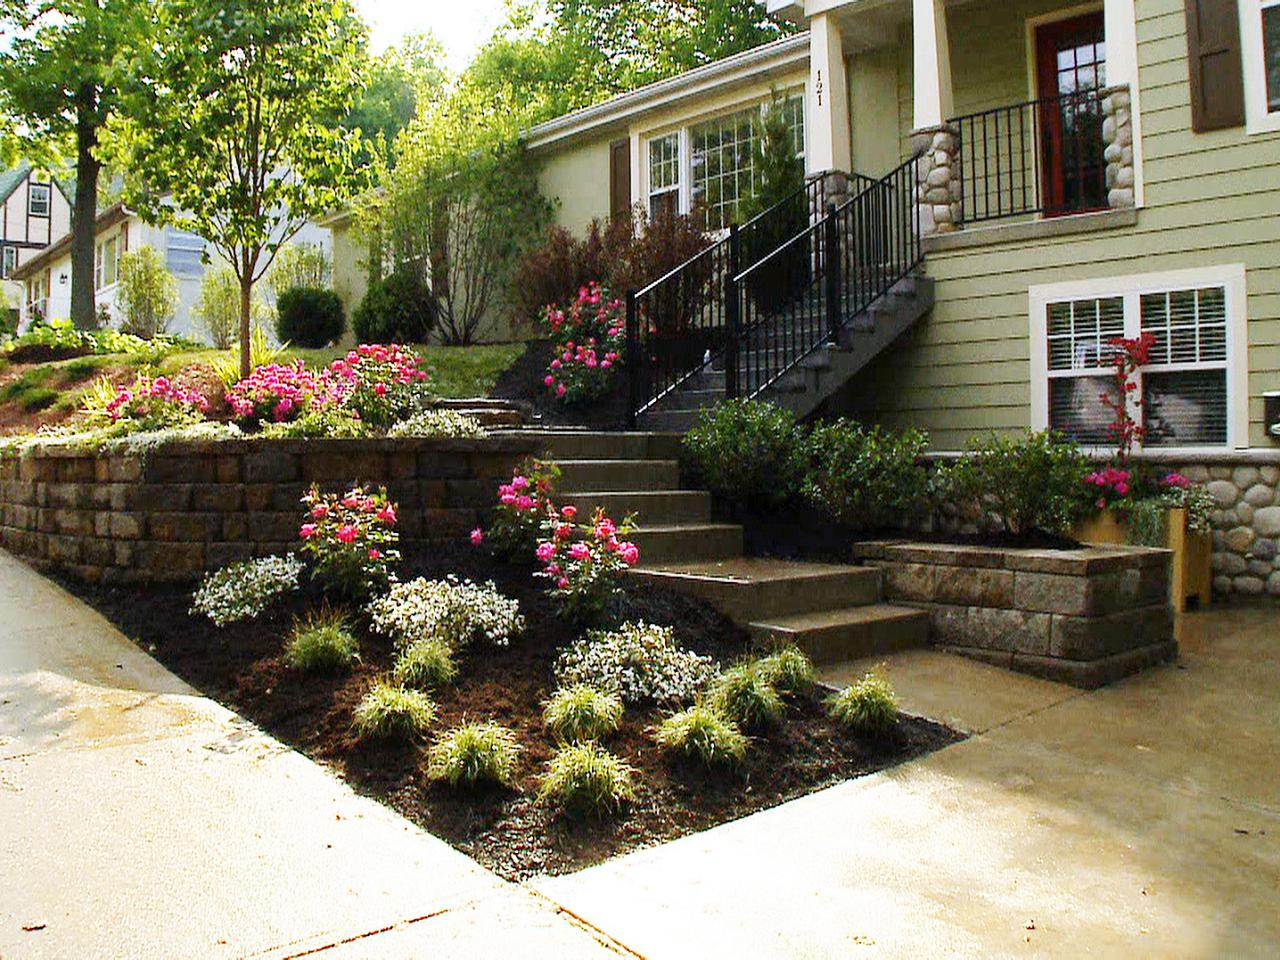 Landscaping Ideas For Front Of House With Stairs And Concrete Floor Bed Slope